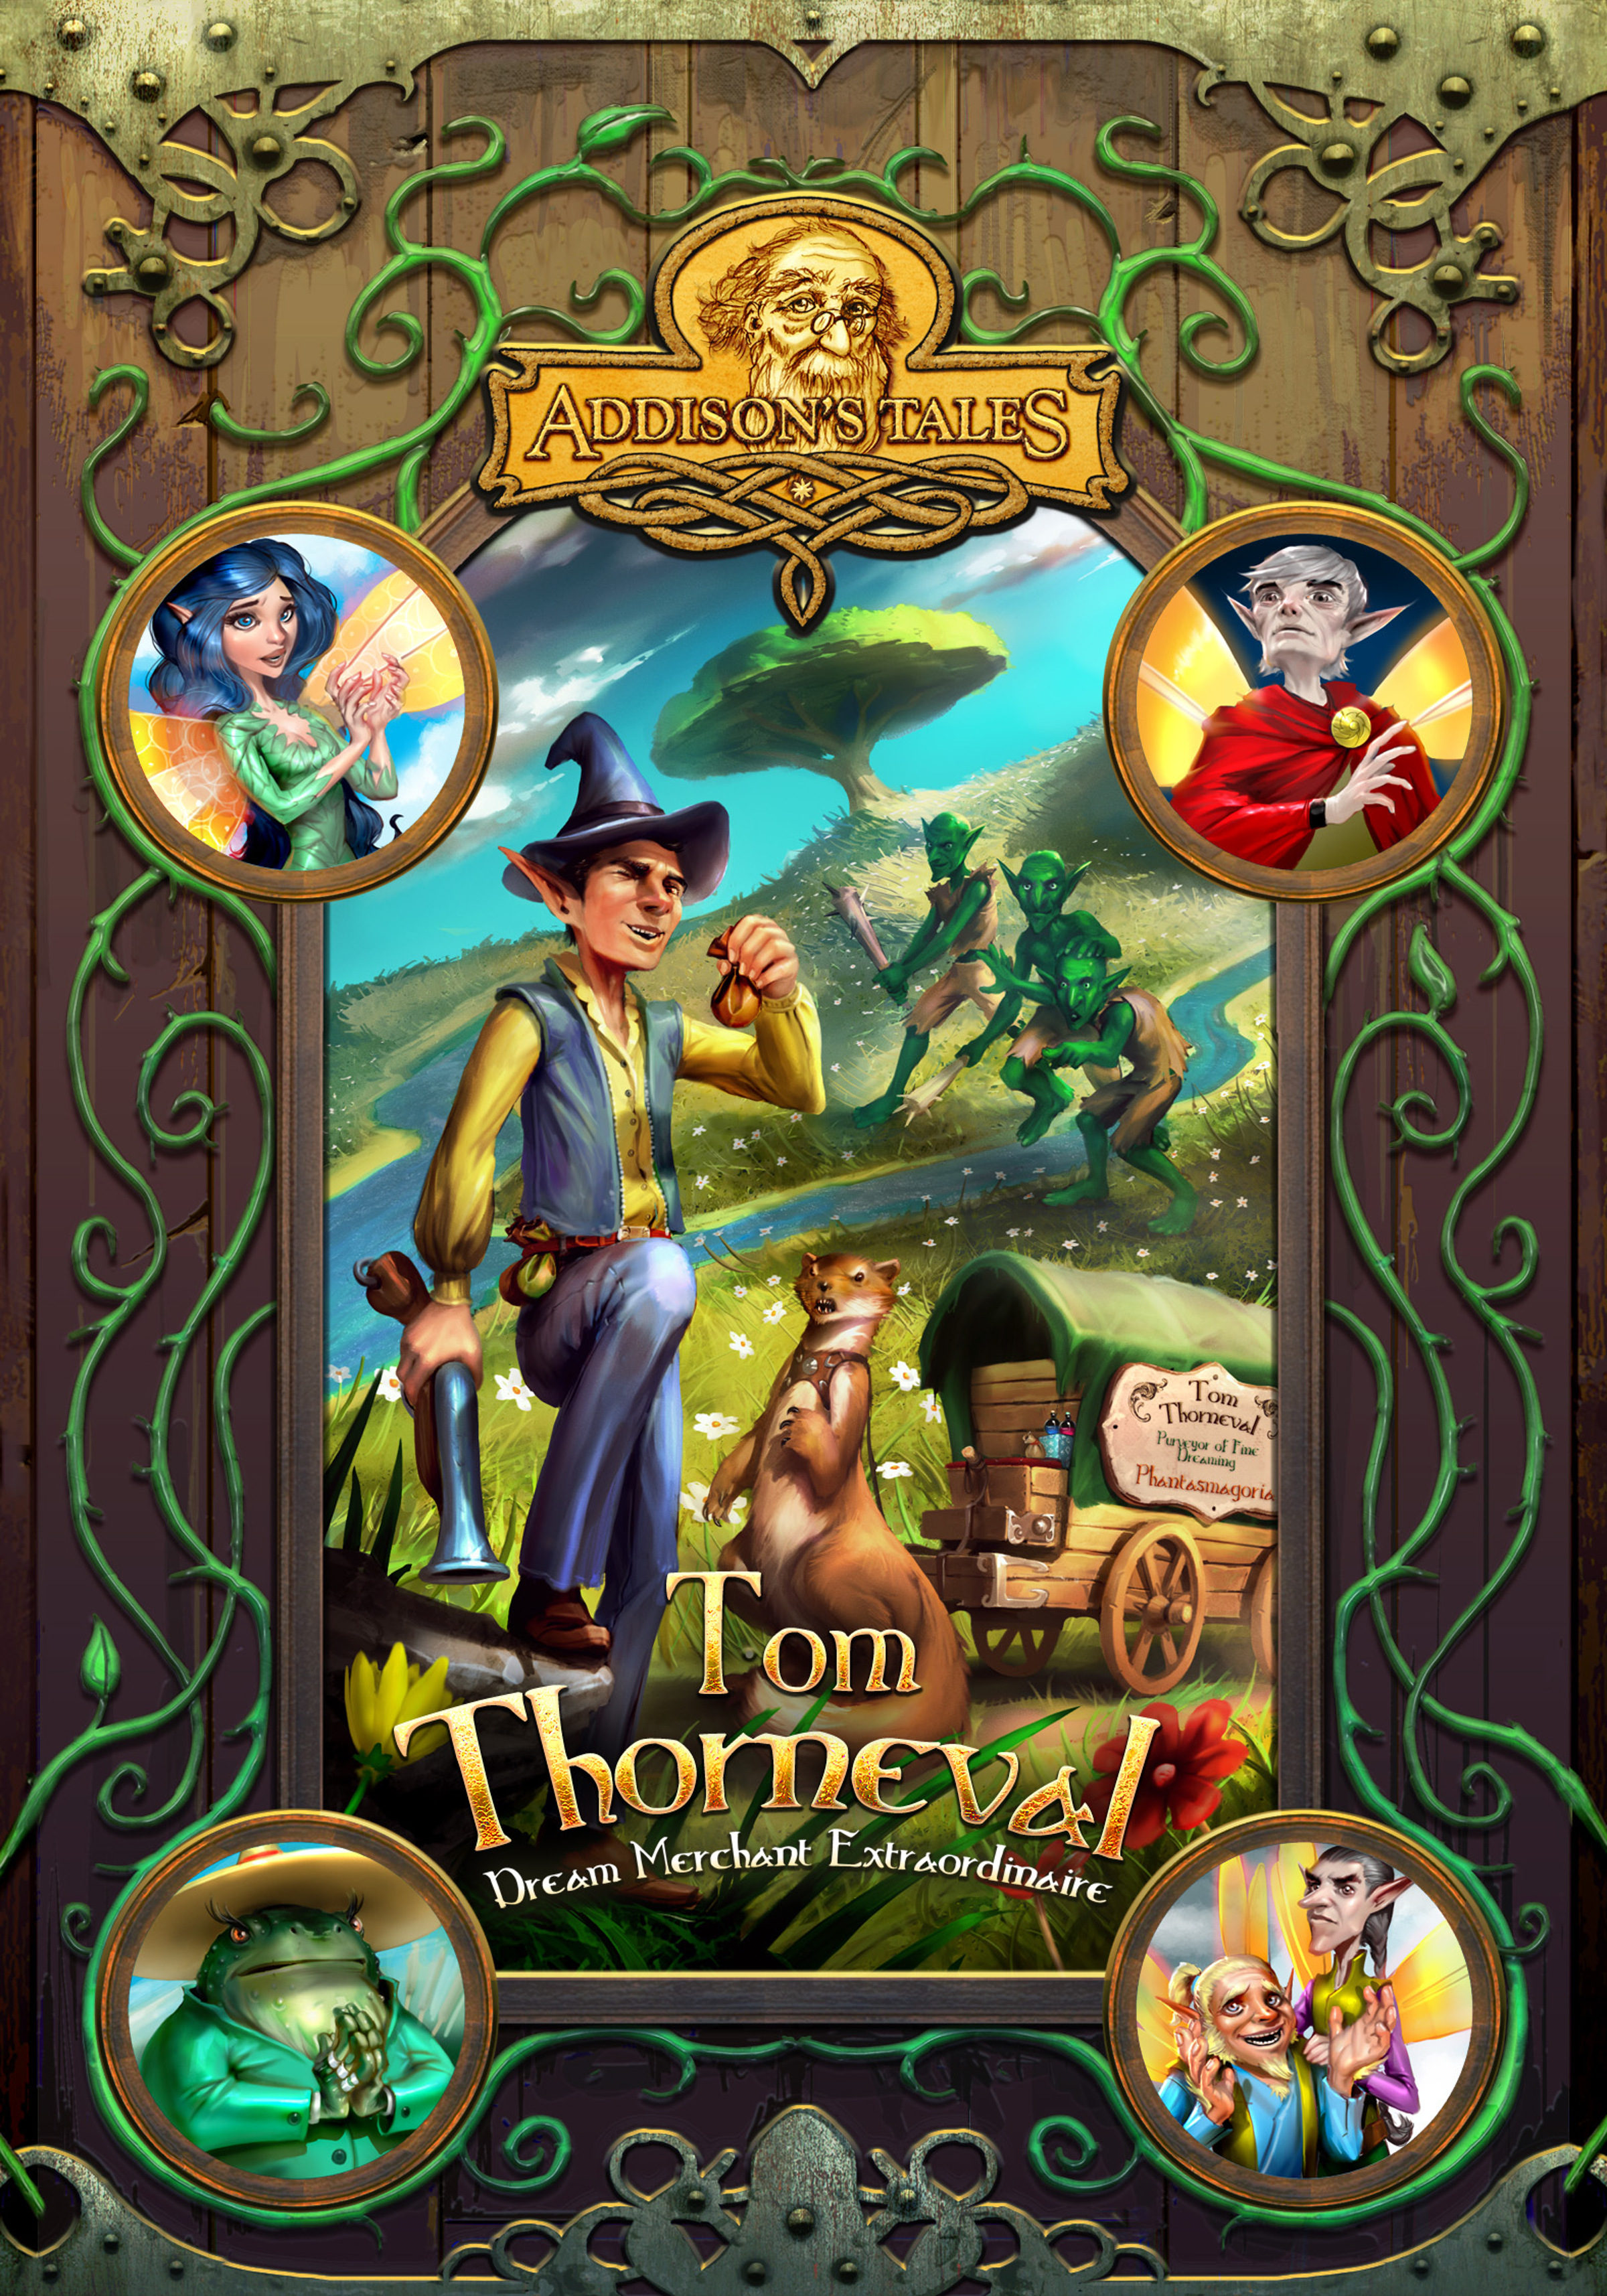 Tom Thorneval: Dream Merchant Extraordinaire (Addison